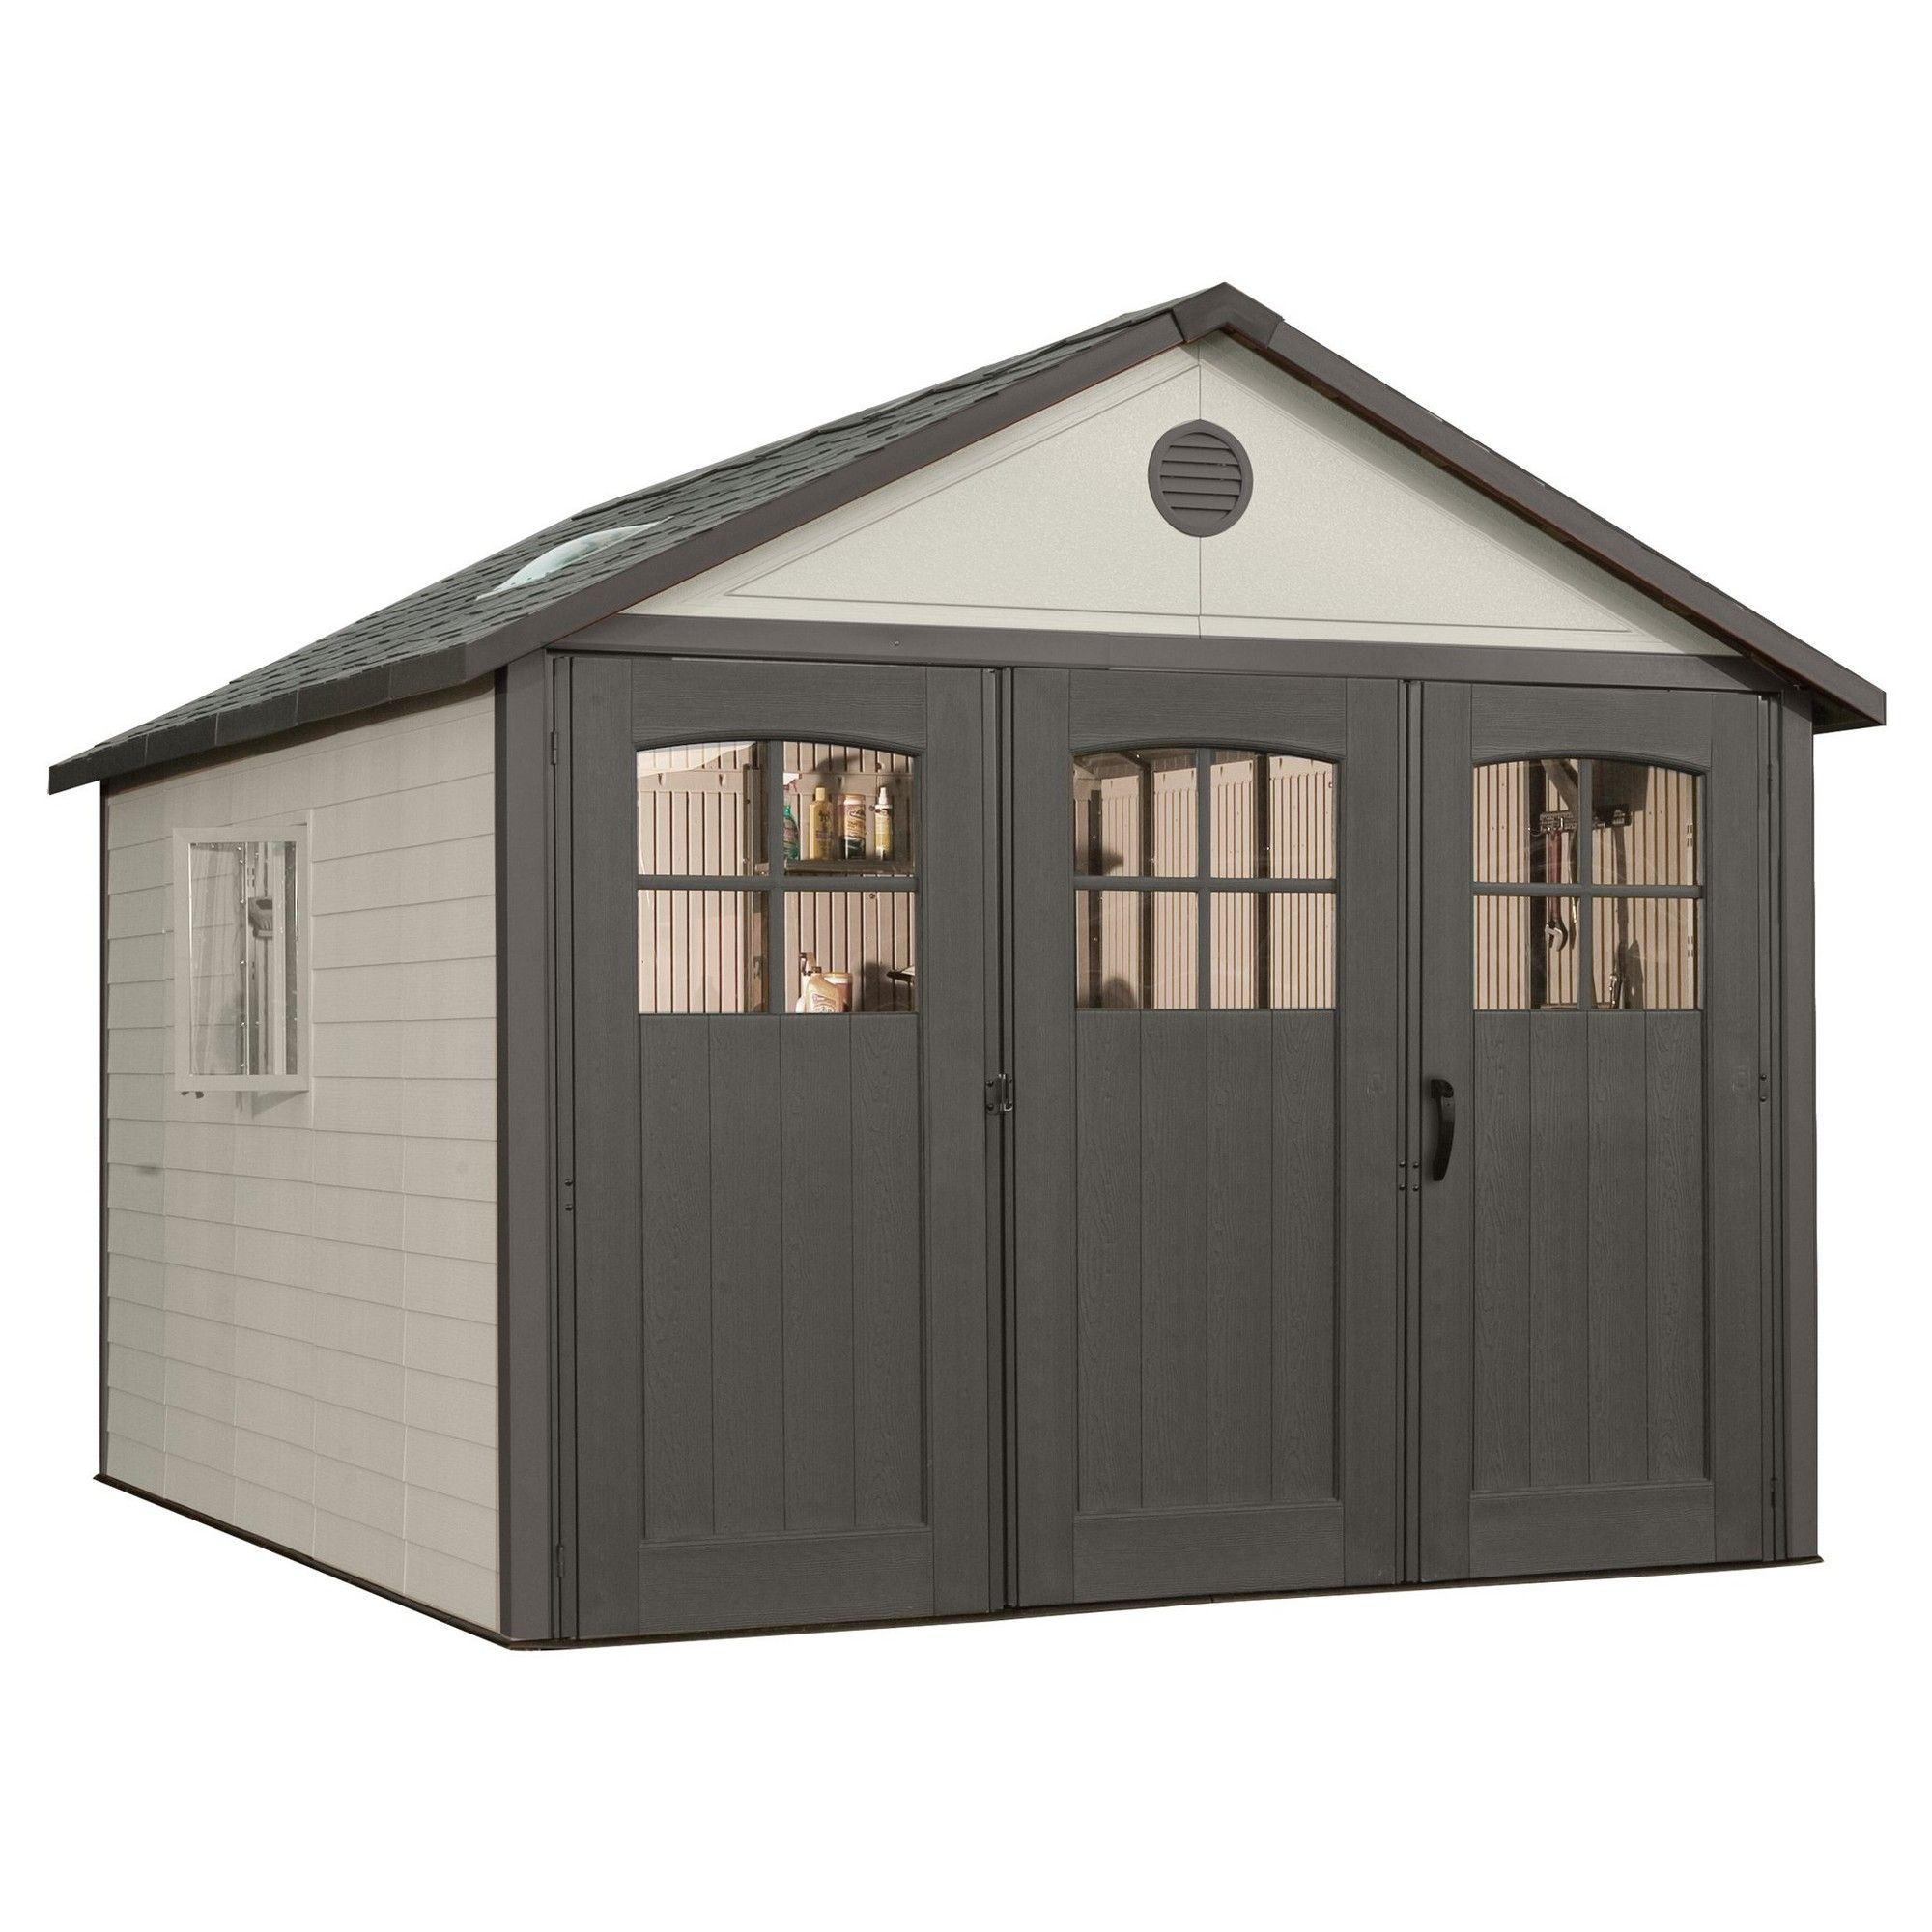 Storage Building Shed 11 X 11 Gray Lifetime Outdoor Sheds Outdoor Storage Sheds Building A Shed